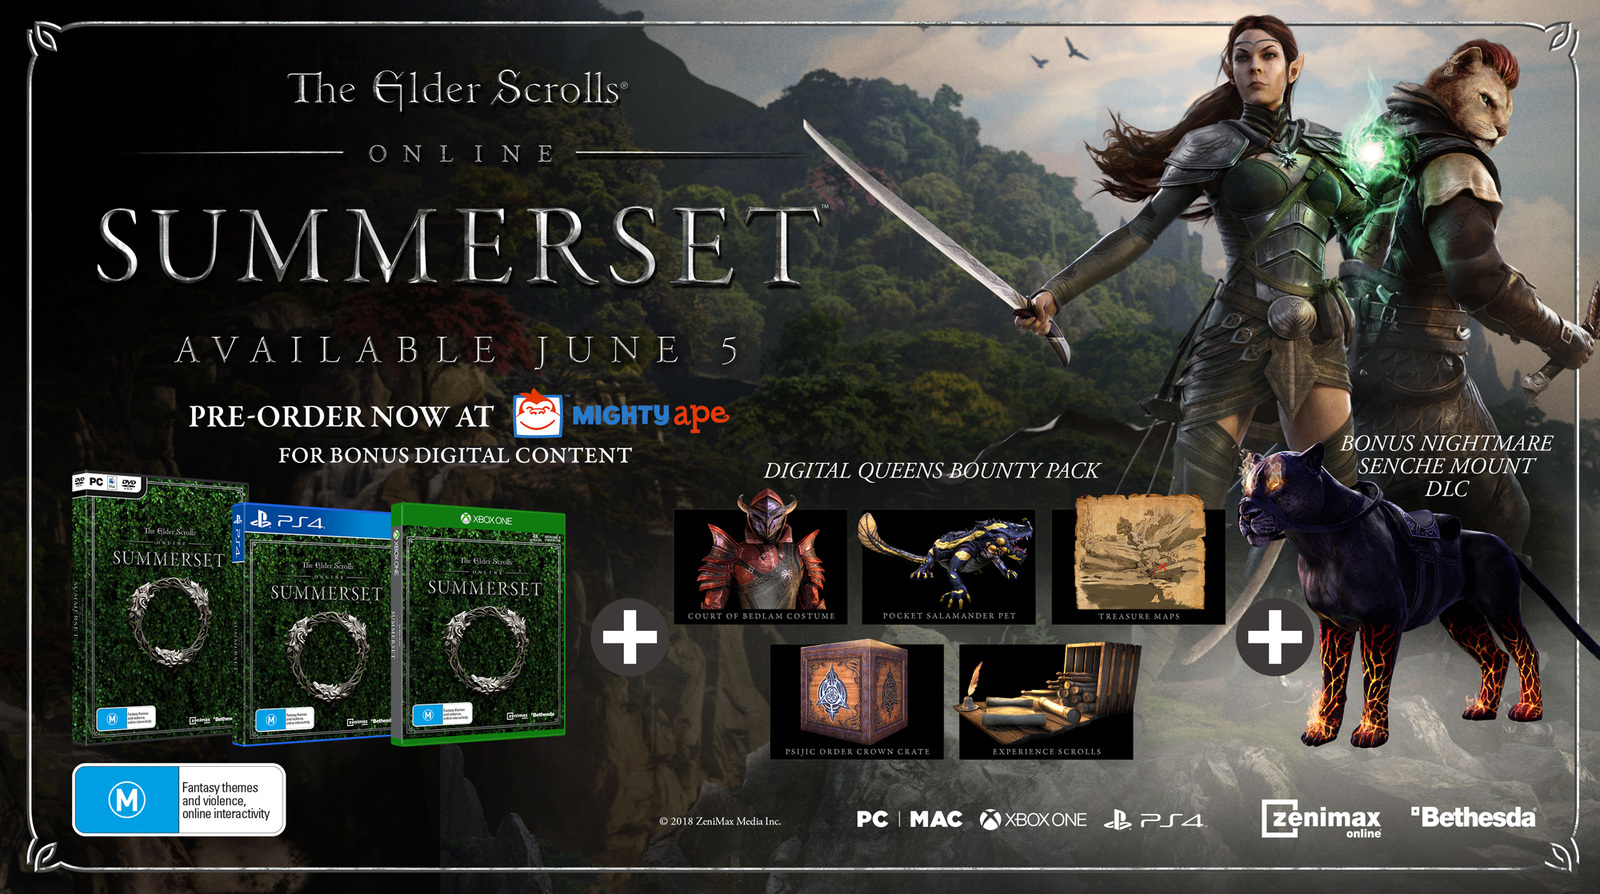 elder scrolls online summerset pc game on sale now